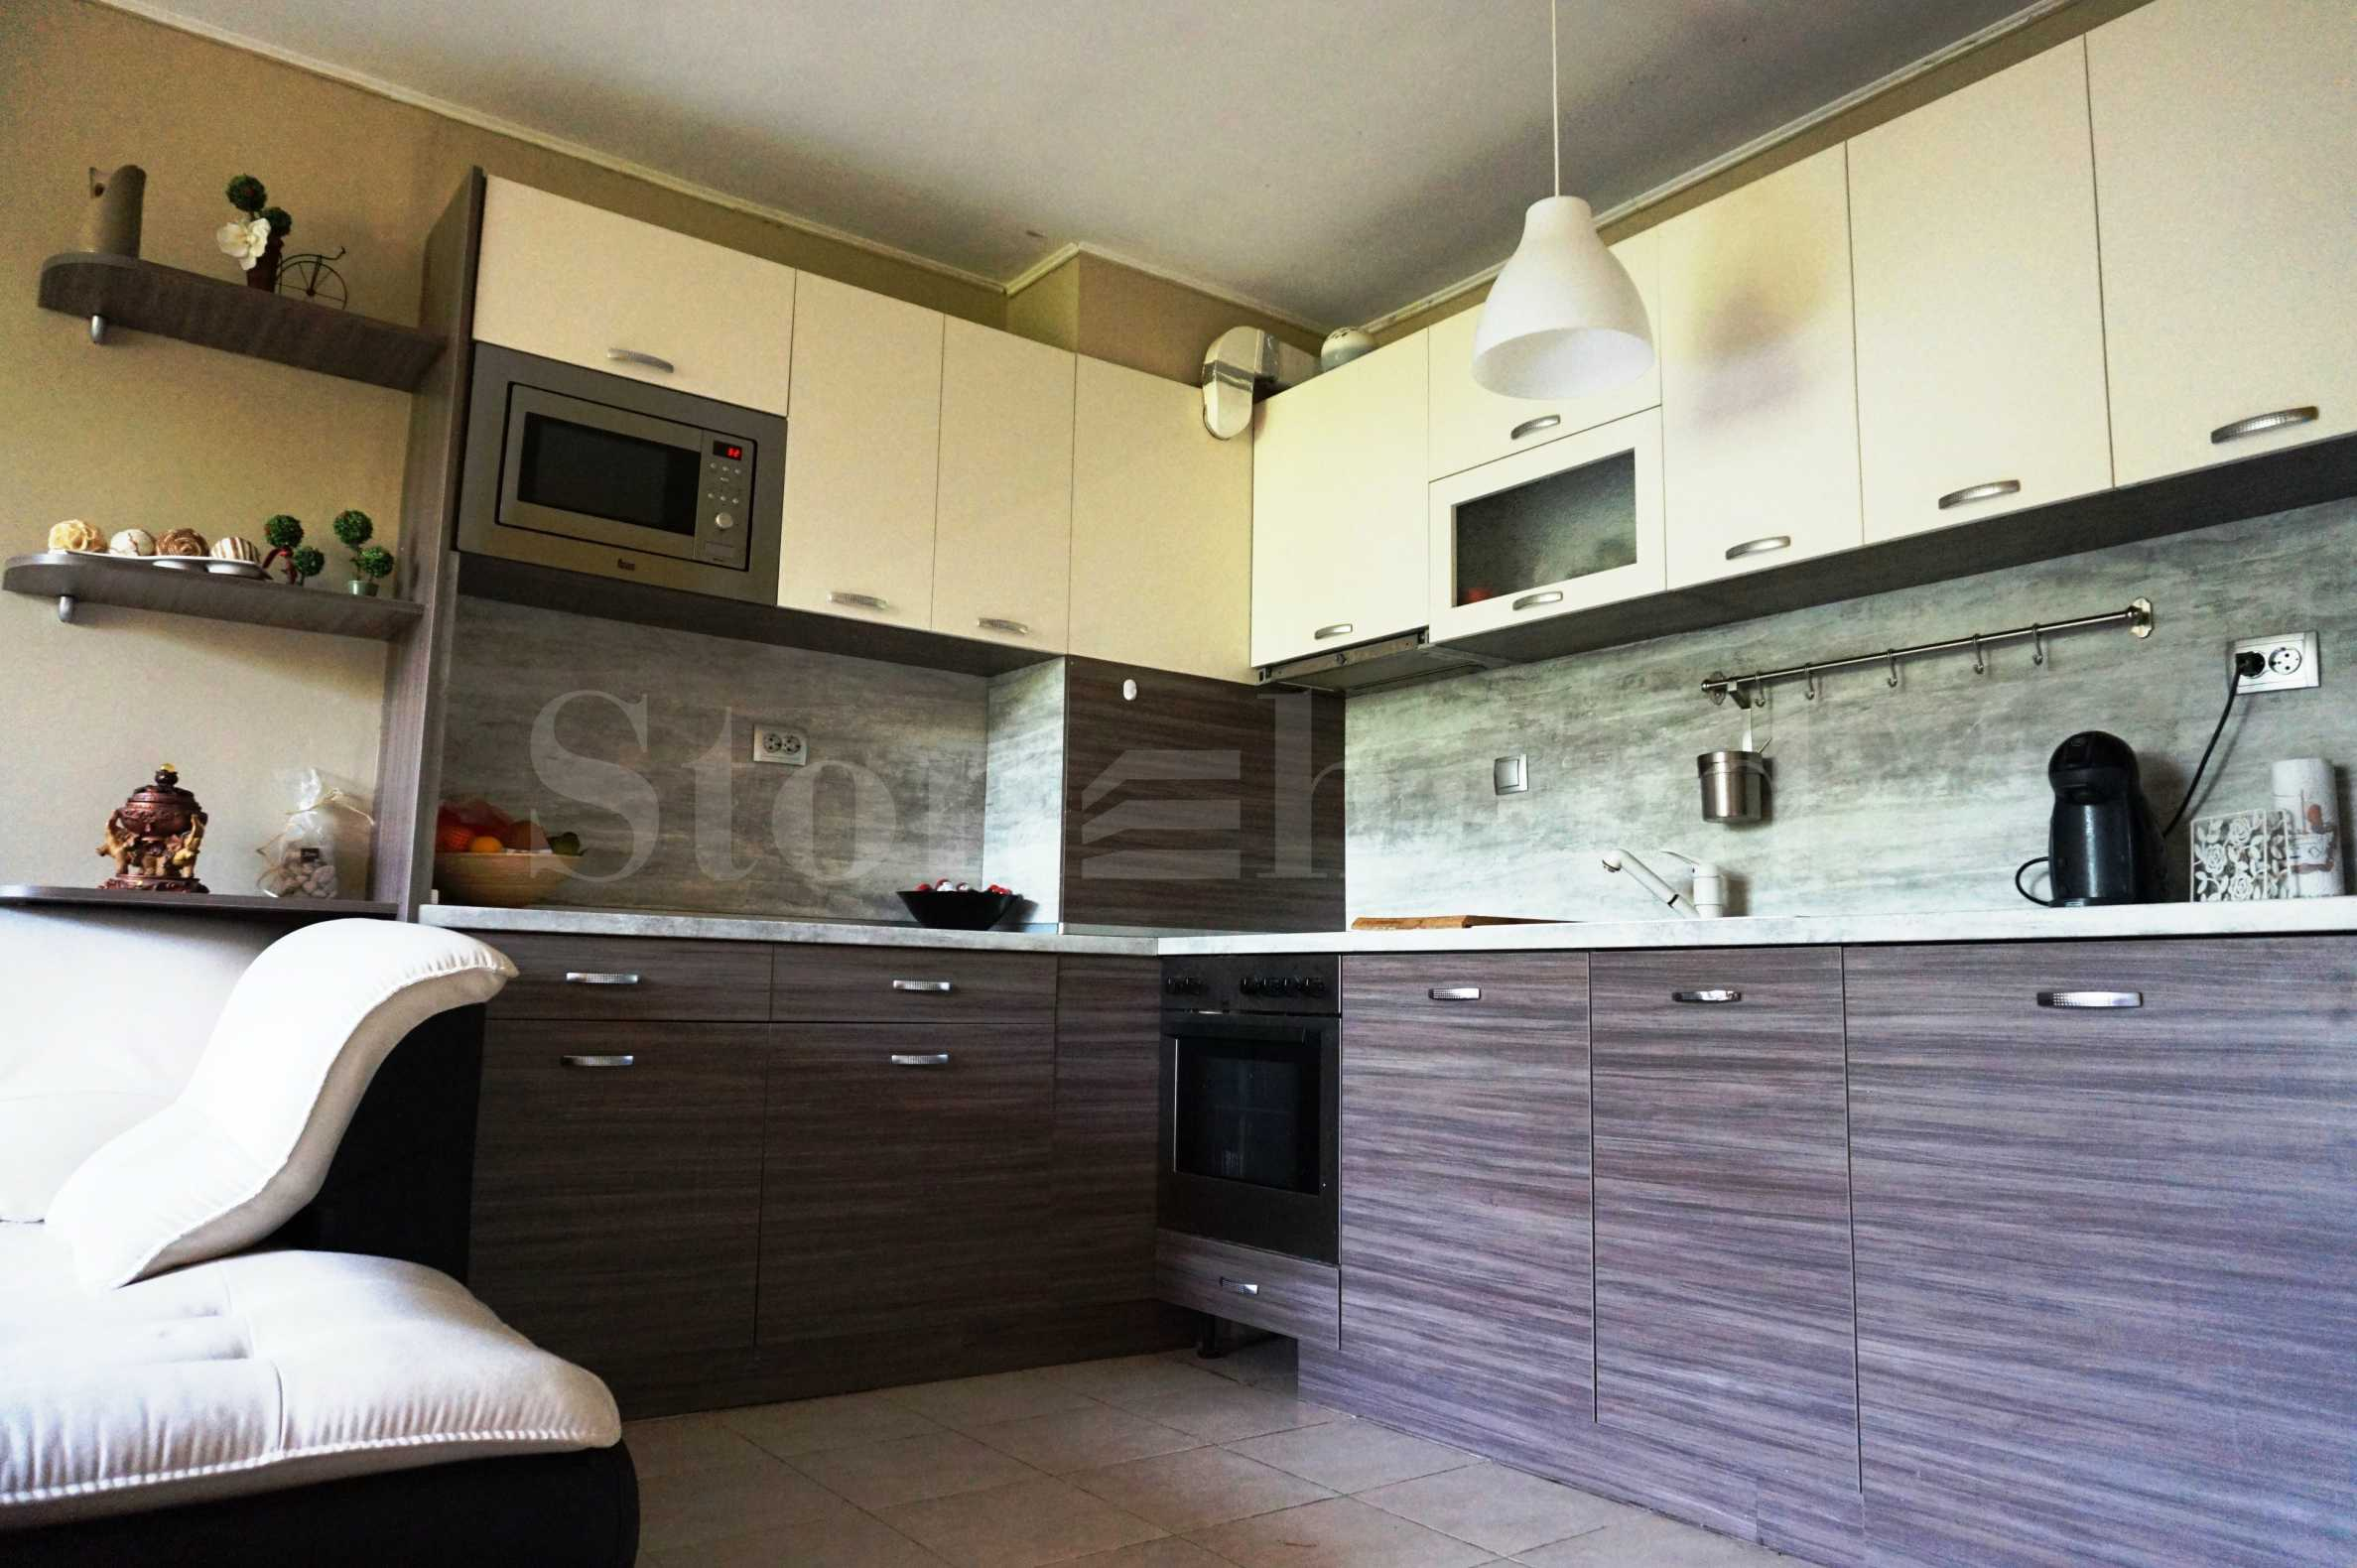 1-bedroom apartment in Varna1 - Stonehard